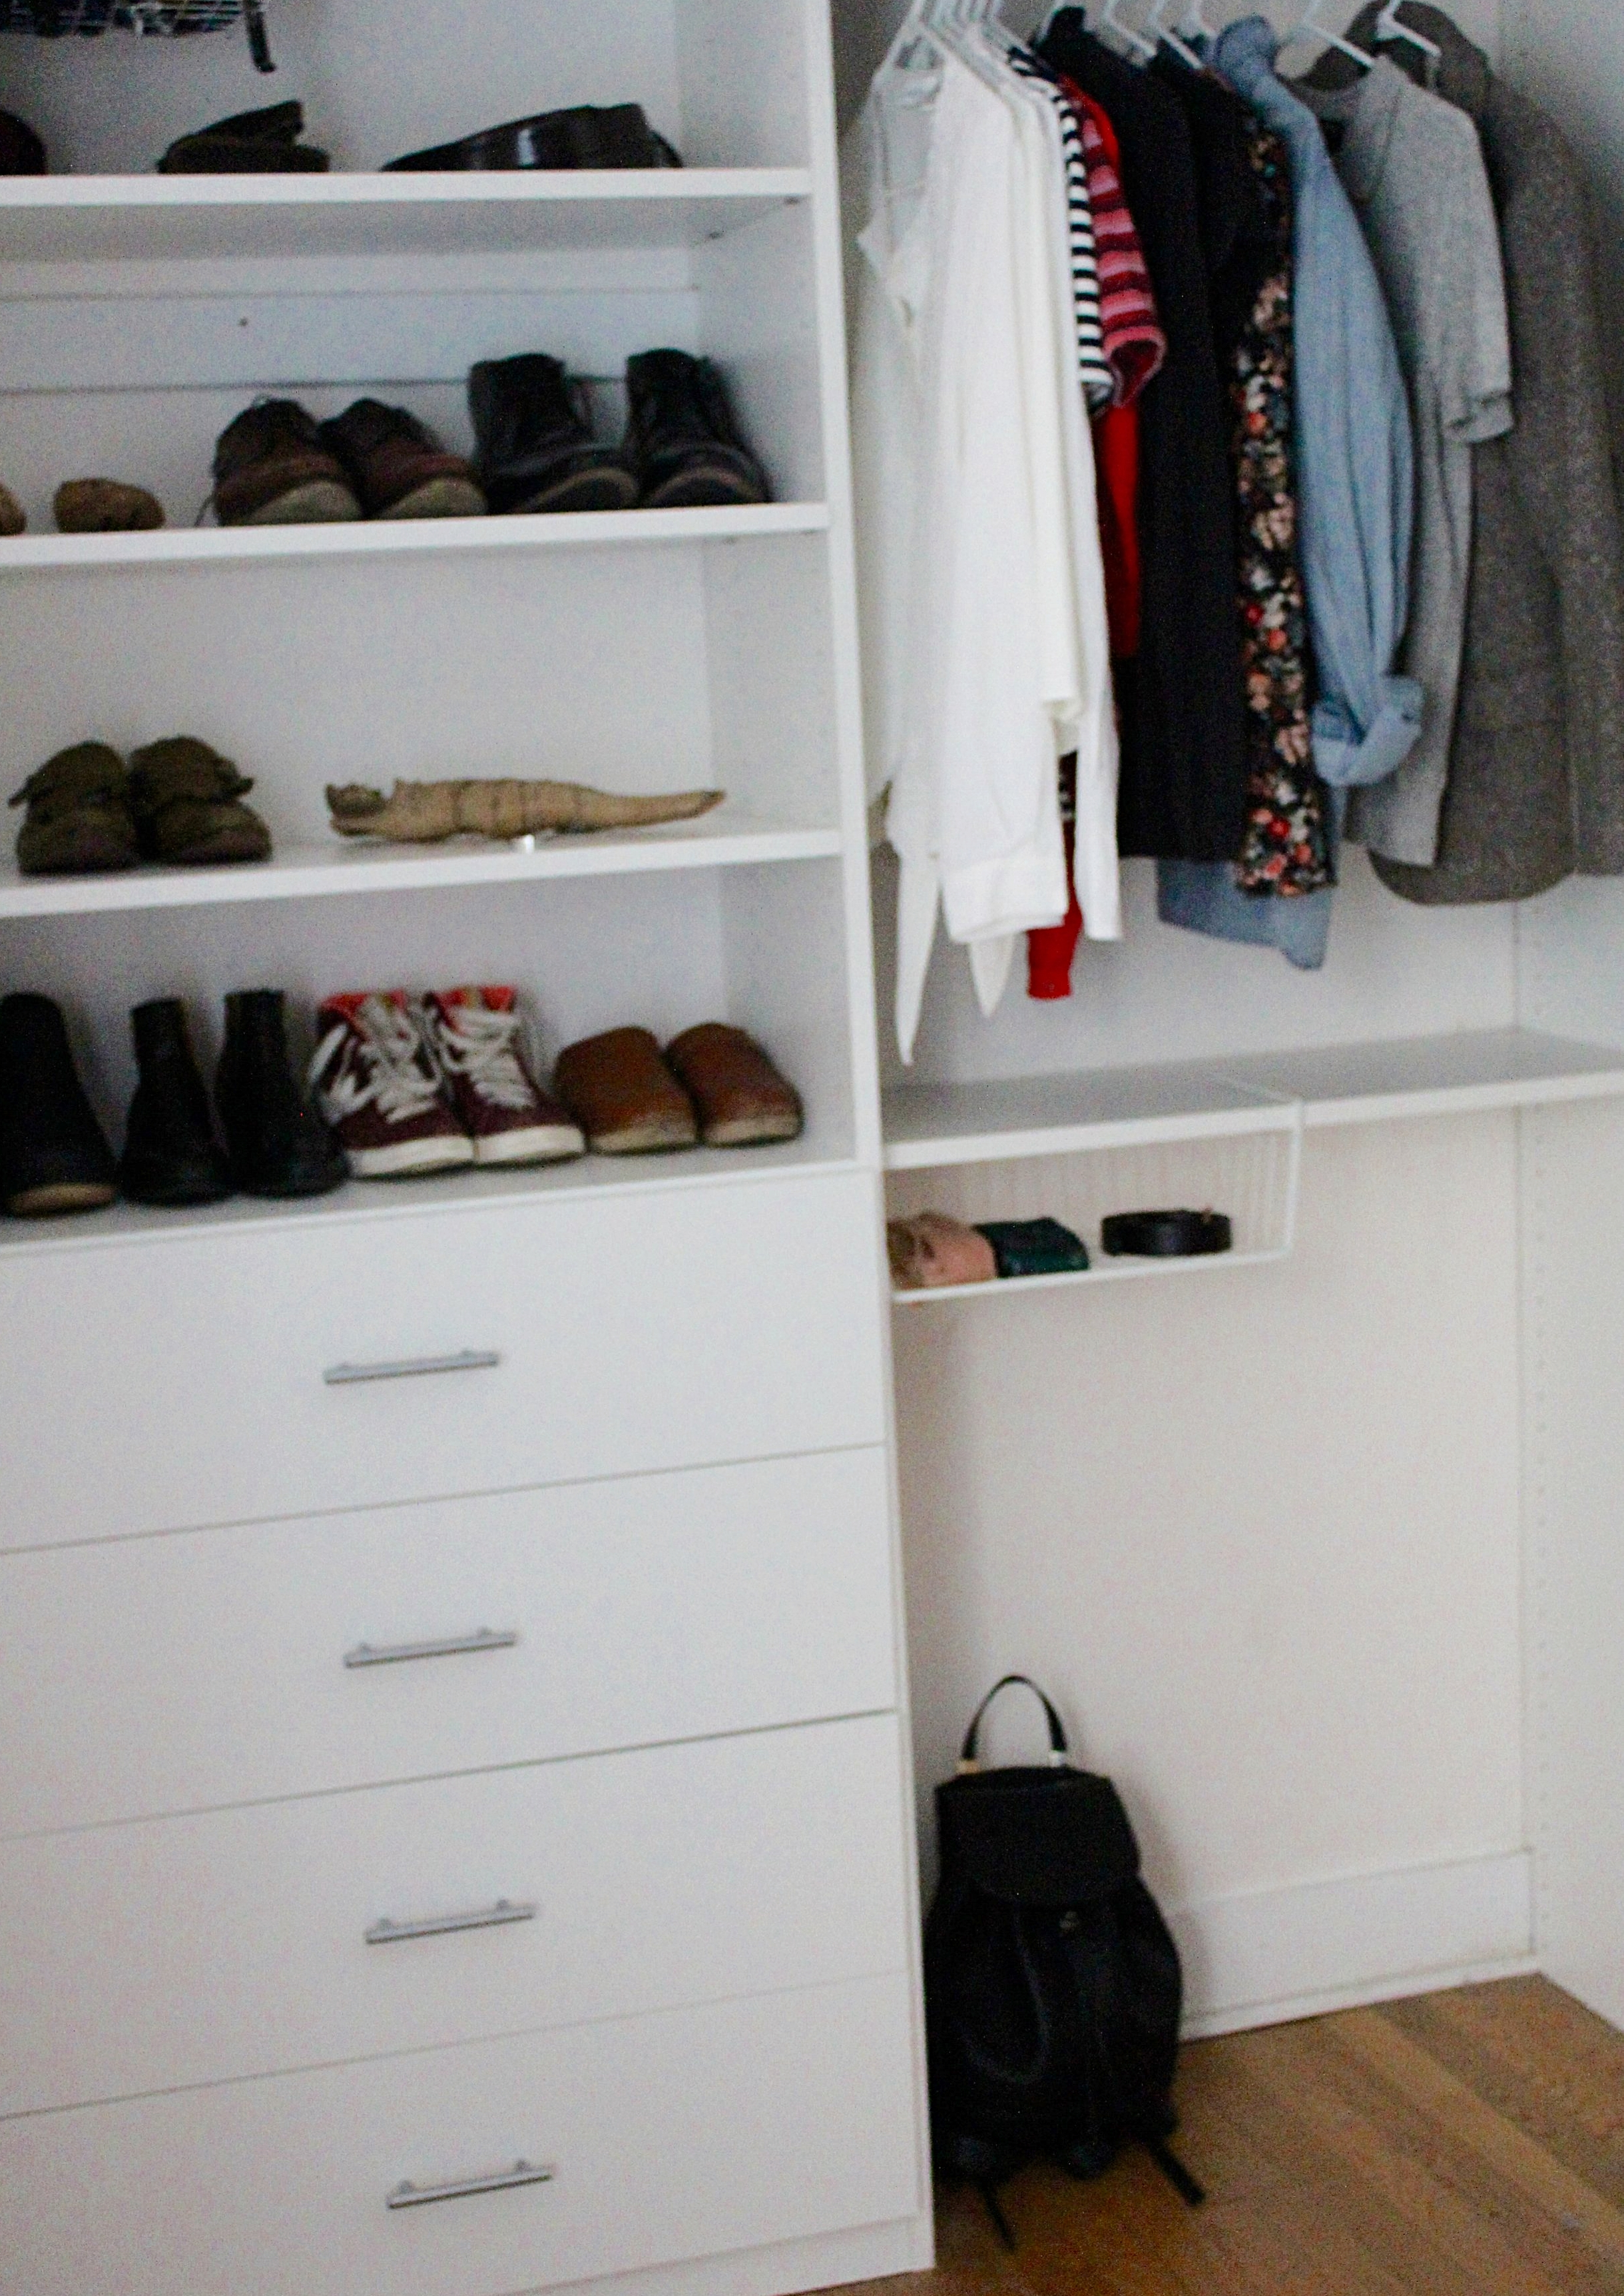 My (almost) finished closet. (That's my husband's clutter up top!)